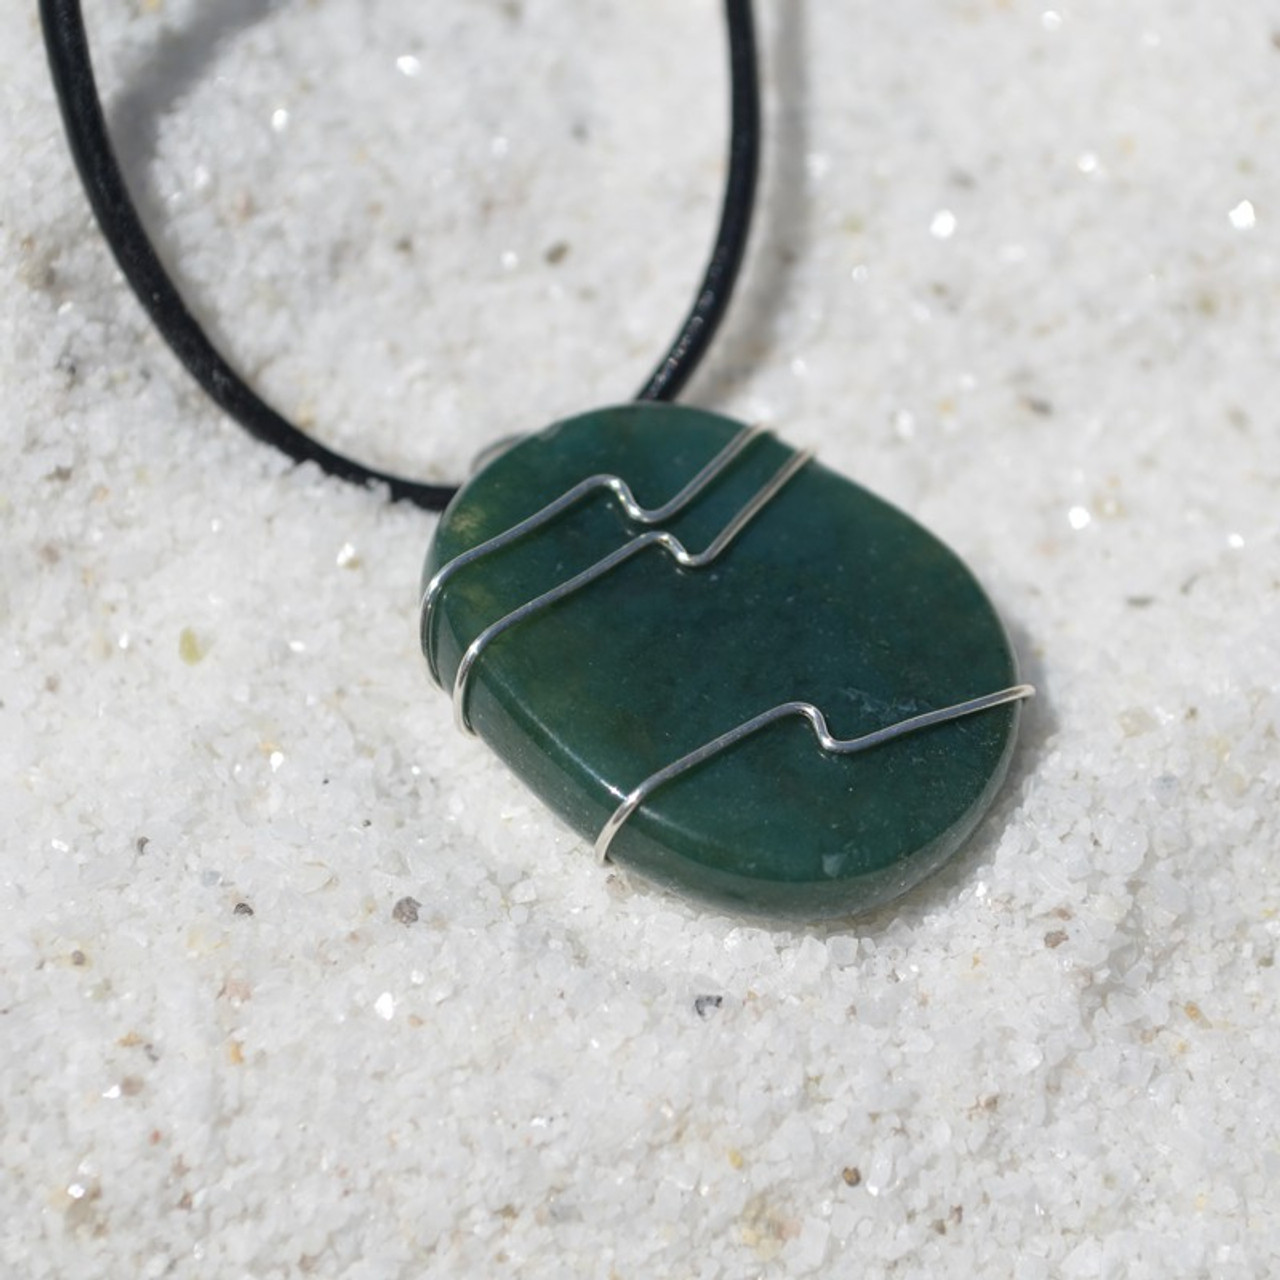 Green Moss Agate Palm Stone Hand Wire Wrapped on a Leather Thong Necklace - Made to Order